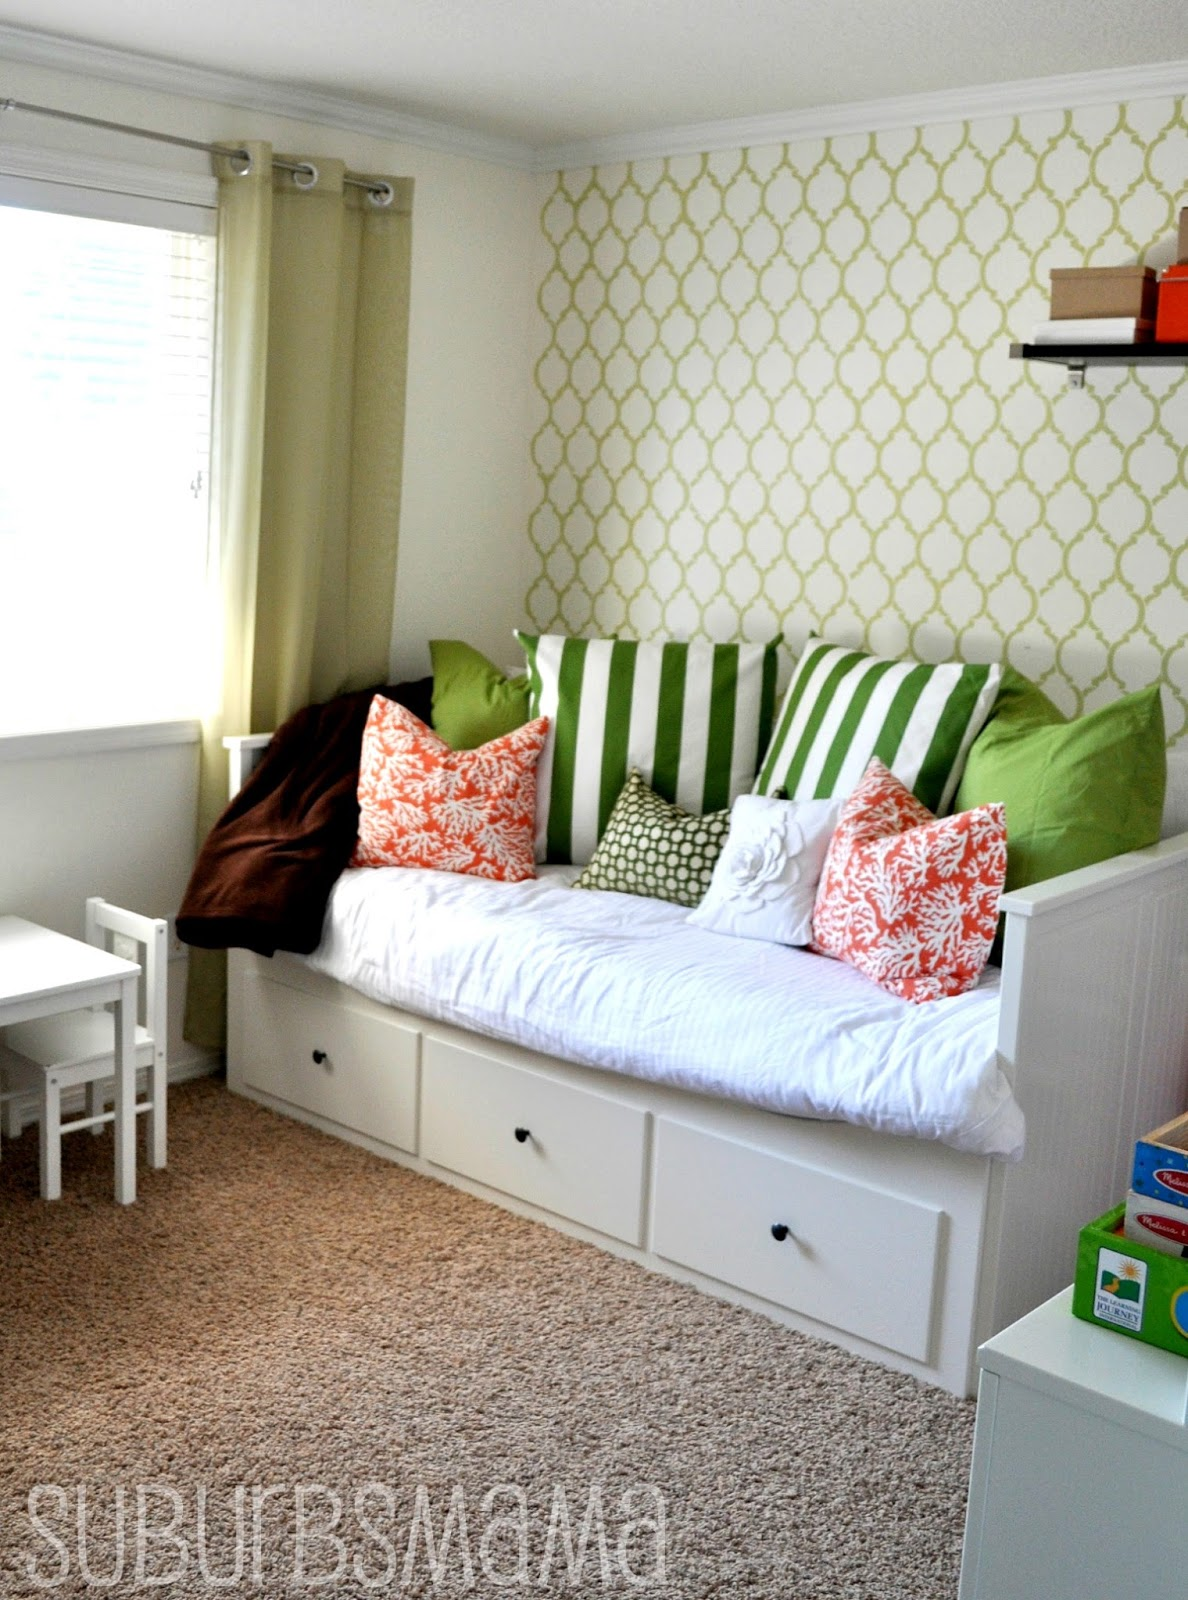 ways to create a dual purpose room - multi-purpose room ideas